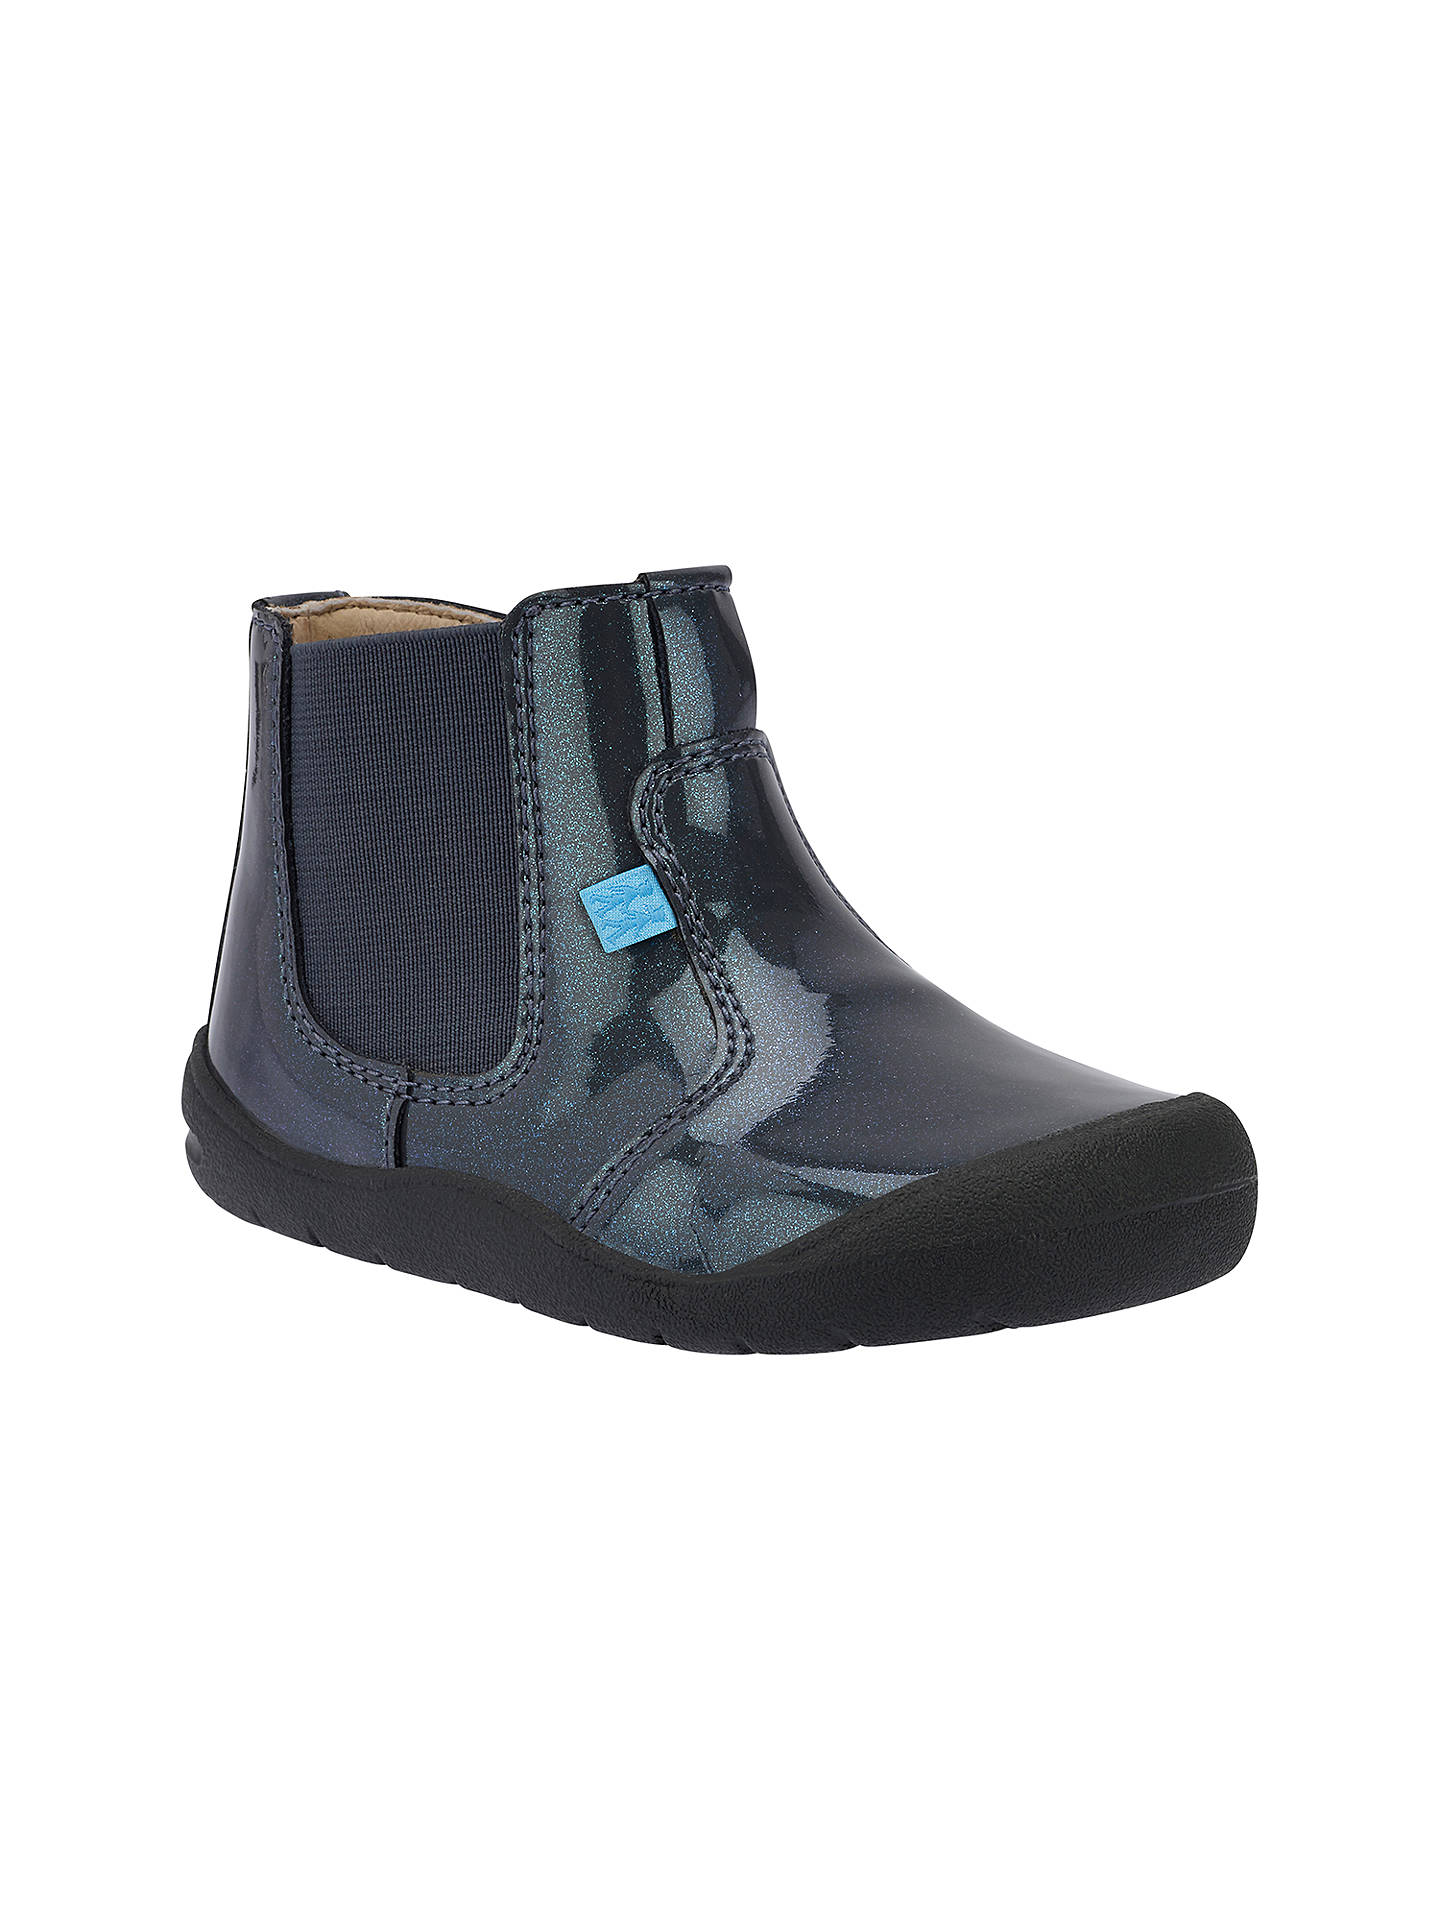 Buy Start-Rite First Leather Chelsea Boots, Gunmetal Patent, 4.5F Jnr Online at johnlewis.com